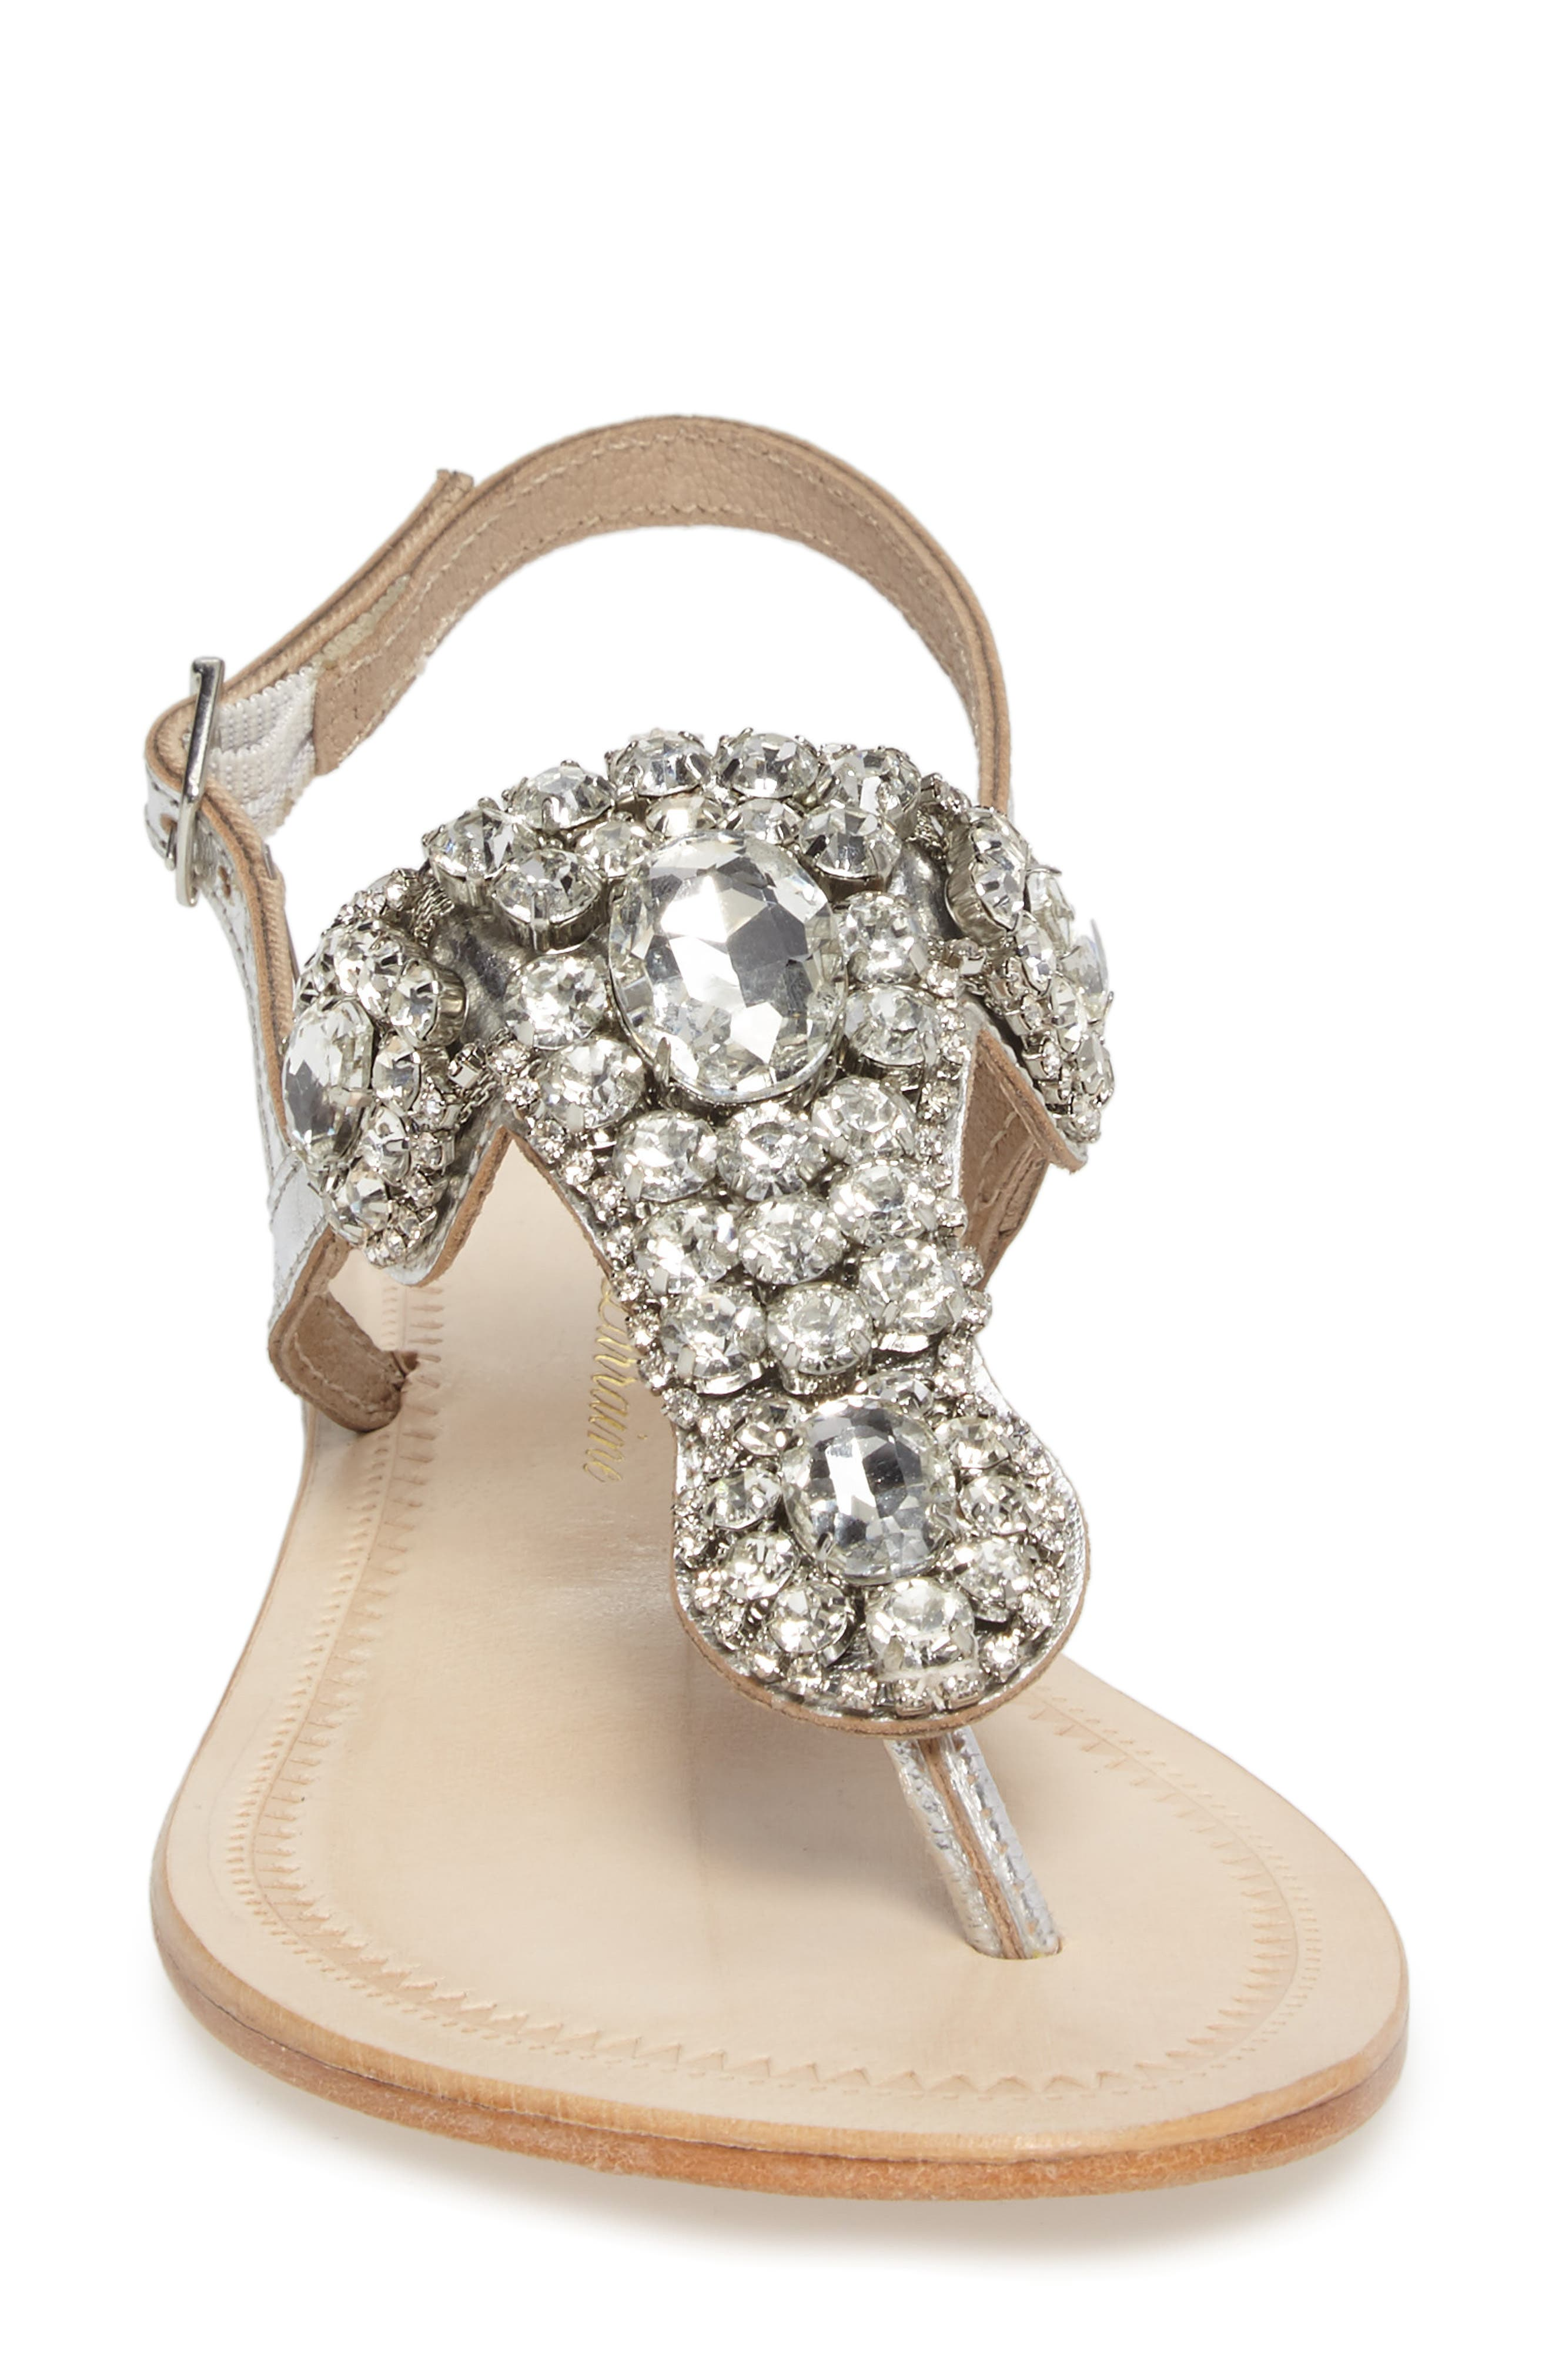 Bahama Crystal Embellished Sandal,                             Alternate thumbnail 4, color,                             045